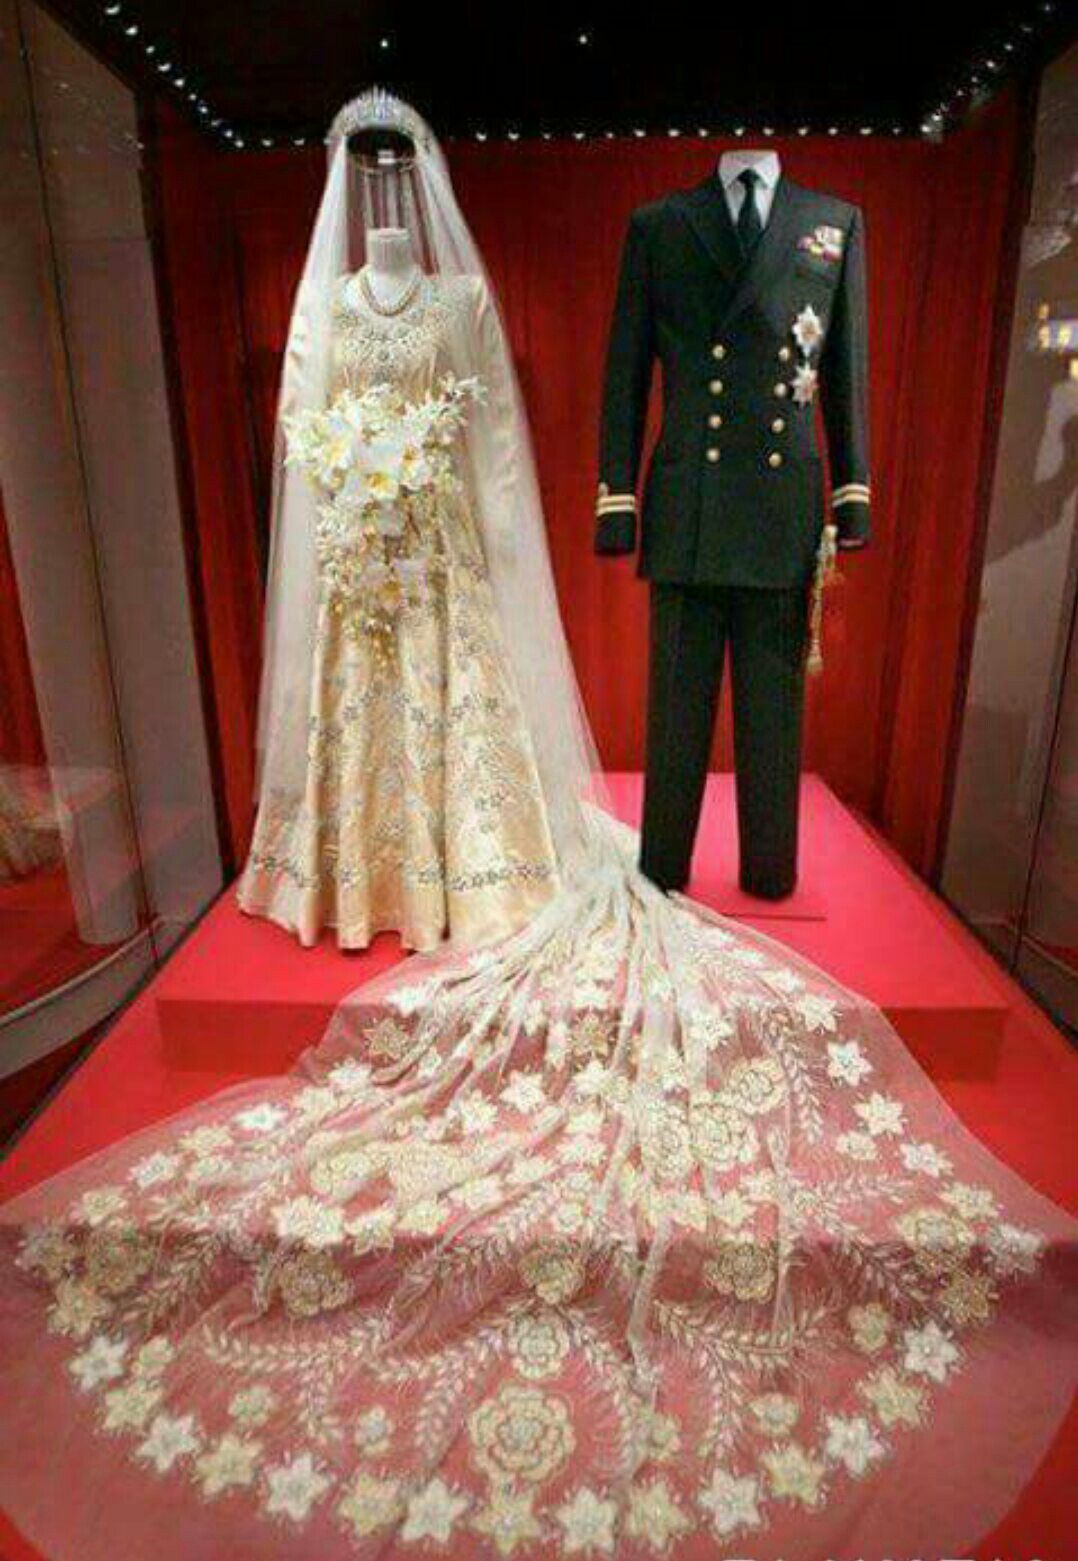 The Queen Elizabeth Ii Wedding Gown Is A Gift From The Syrian